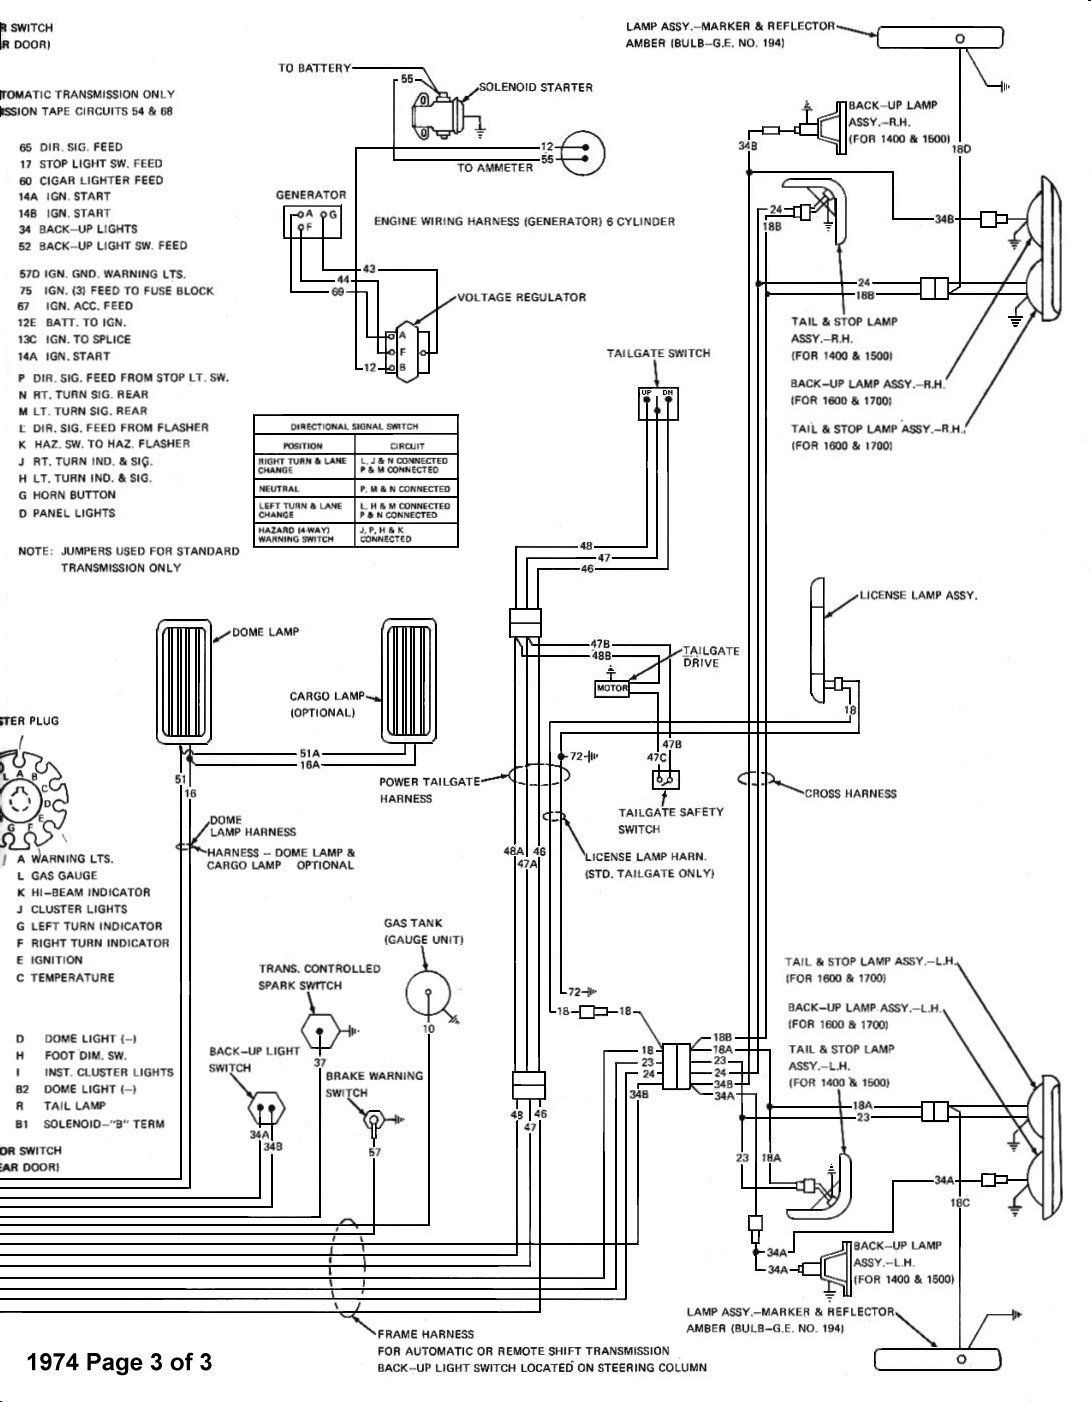 hight resolution of 47 jeep wiring diagram wiring diagrams 96 jeep cherokee wiring diagram blower motor fuse 1948 willys jeep wiring diagram jeep cj5 wiring